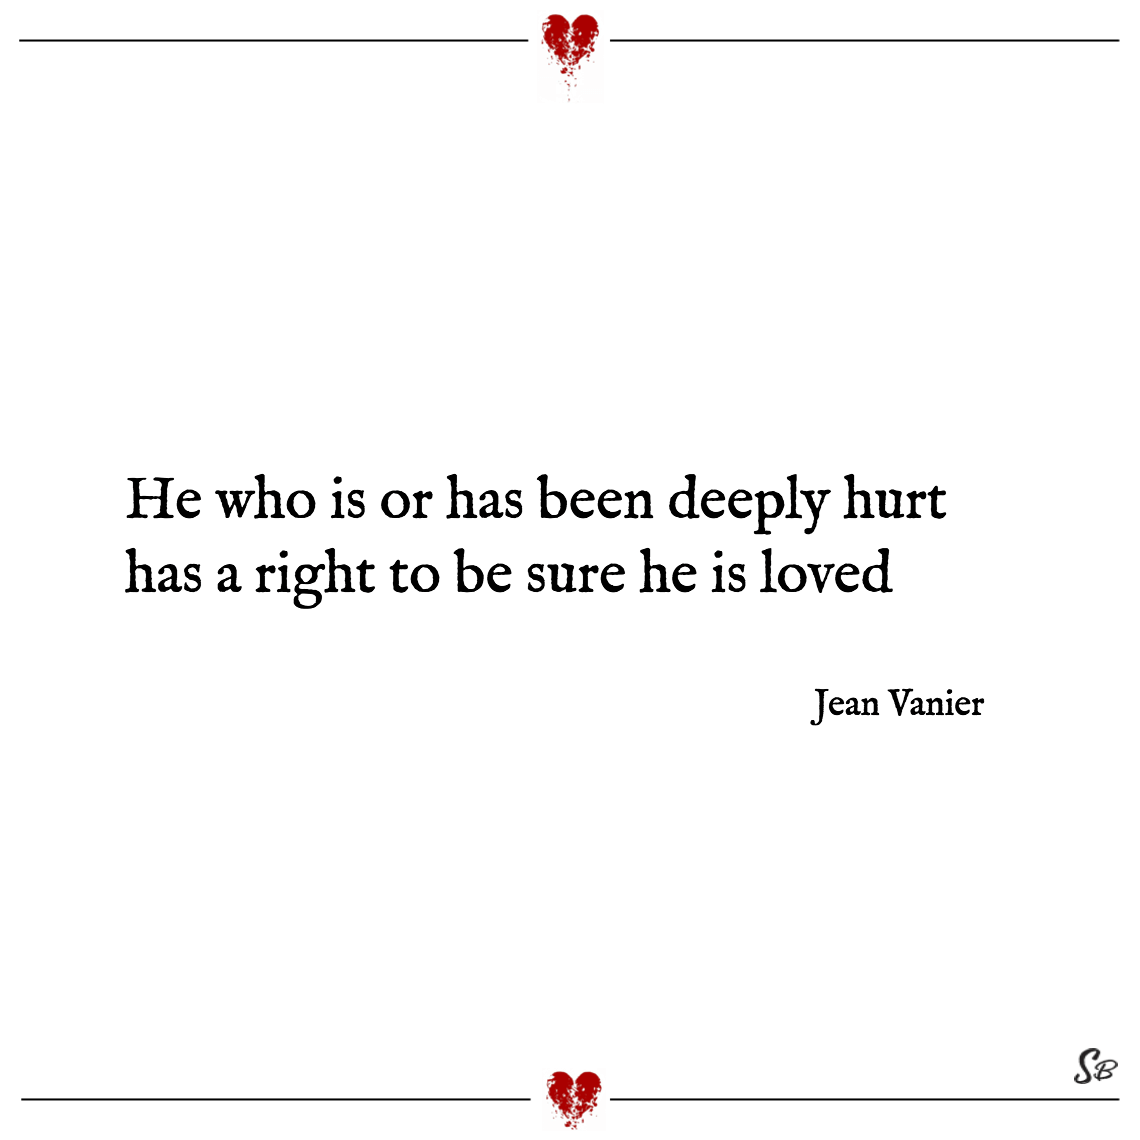 He who is or has been deeply hurt has a right to be sure he is loved jean vanier